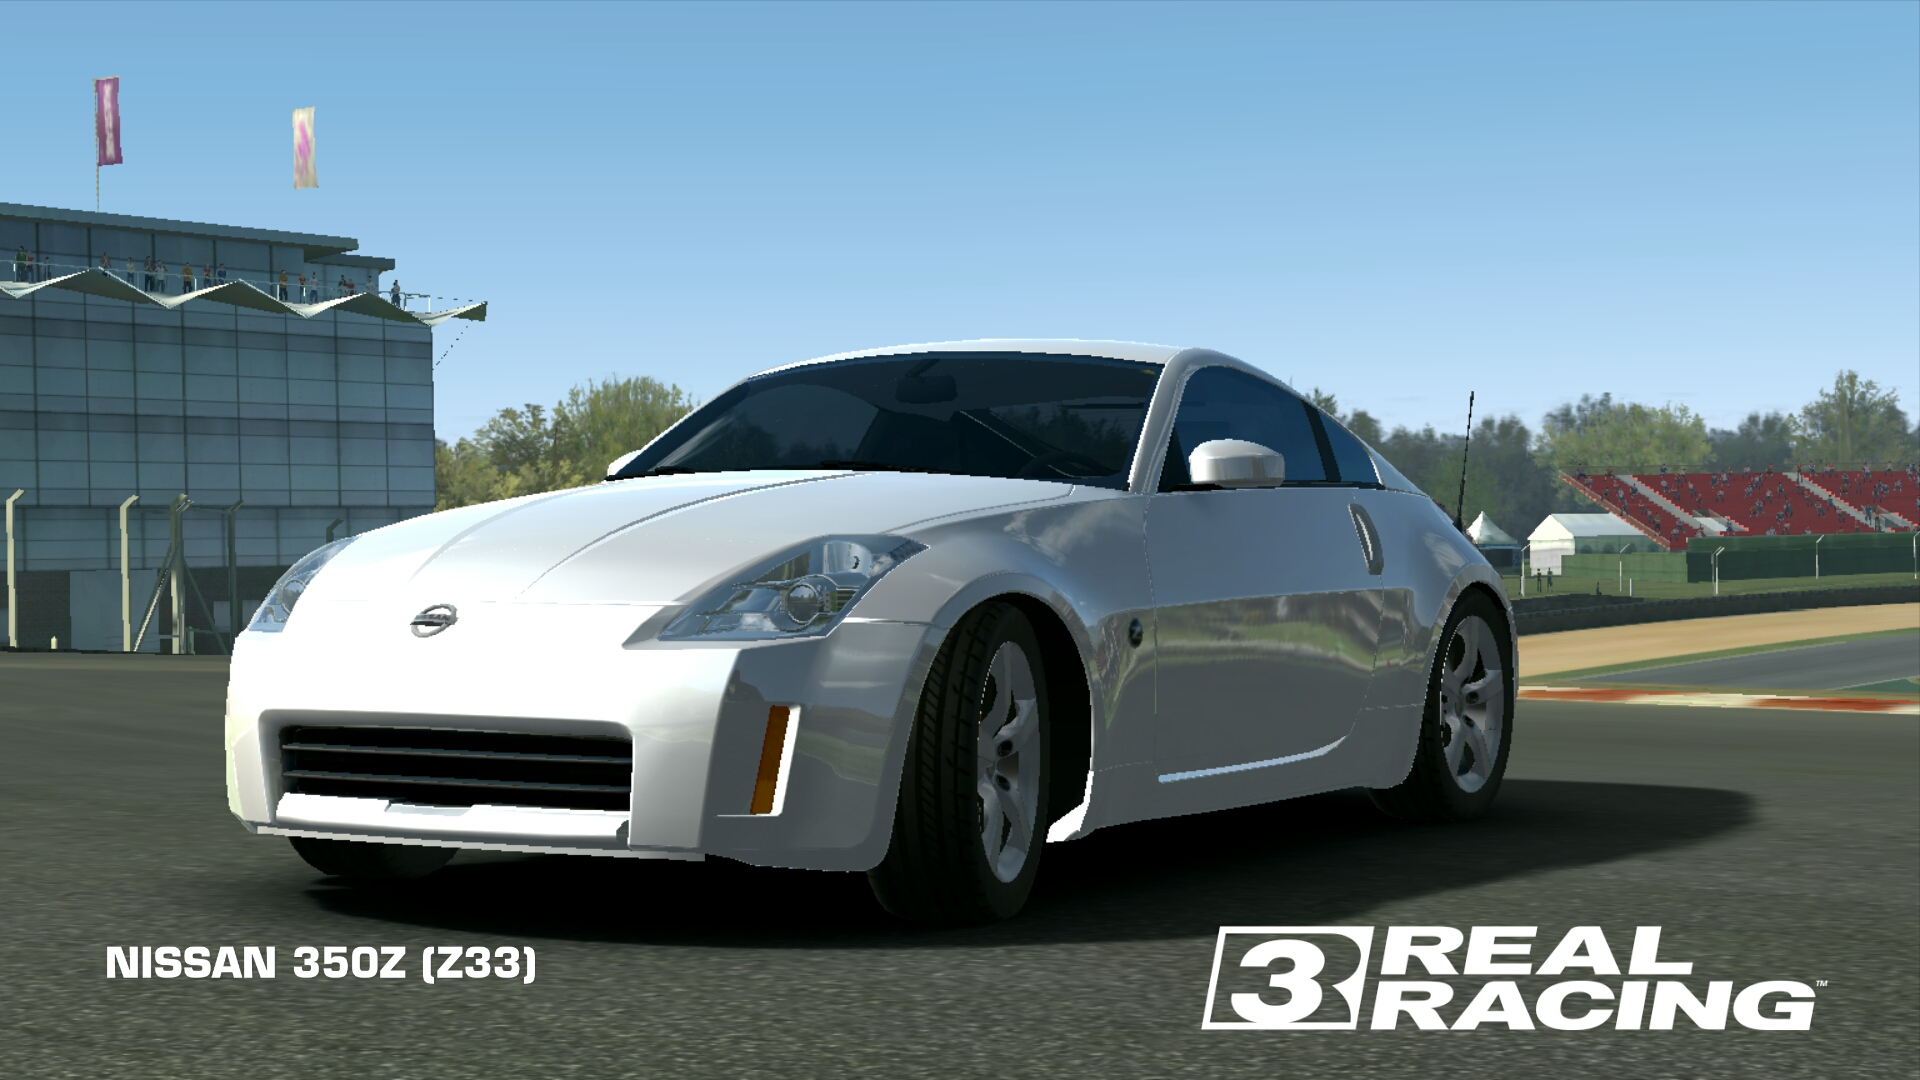 NISSAN 350Z (Z33) | Real Racing 3 Wiki | FANDOM powered by Wikia